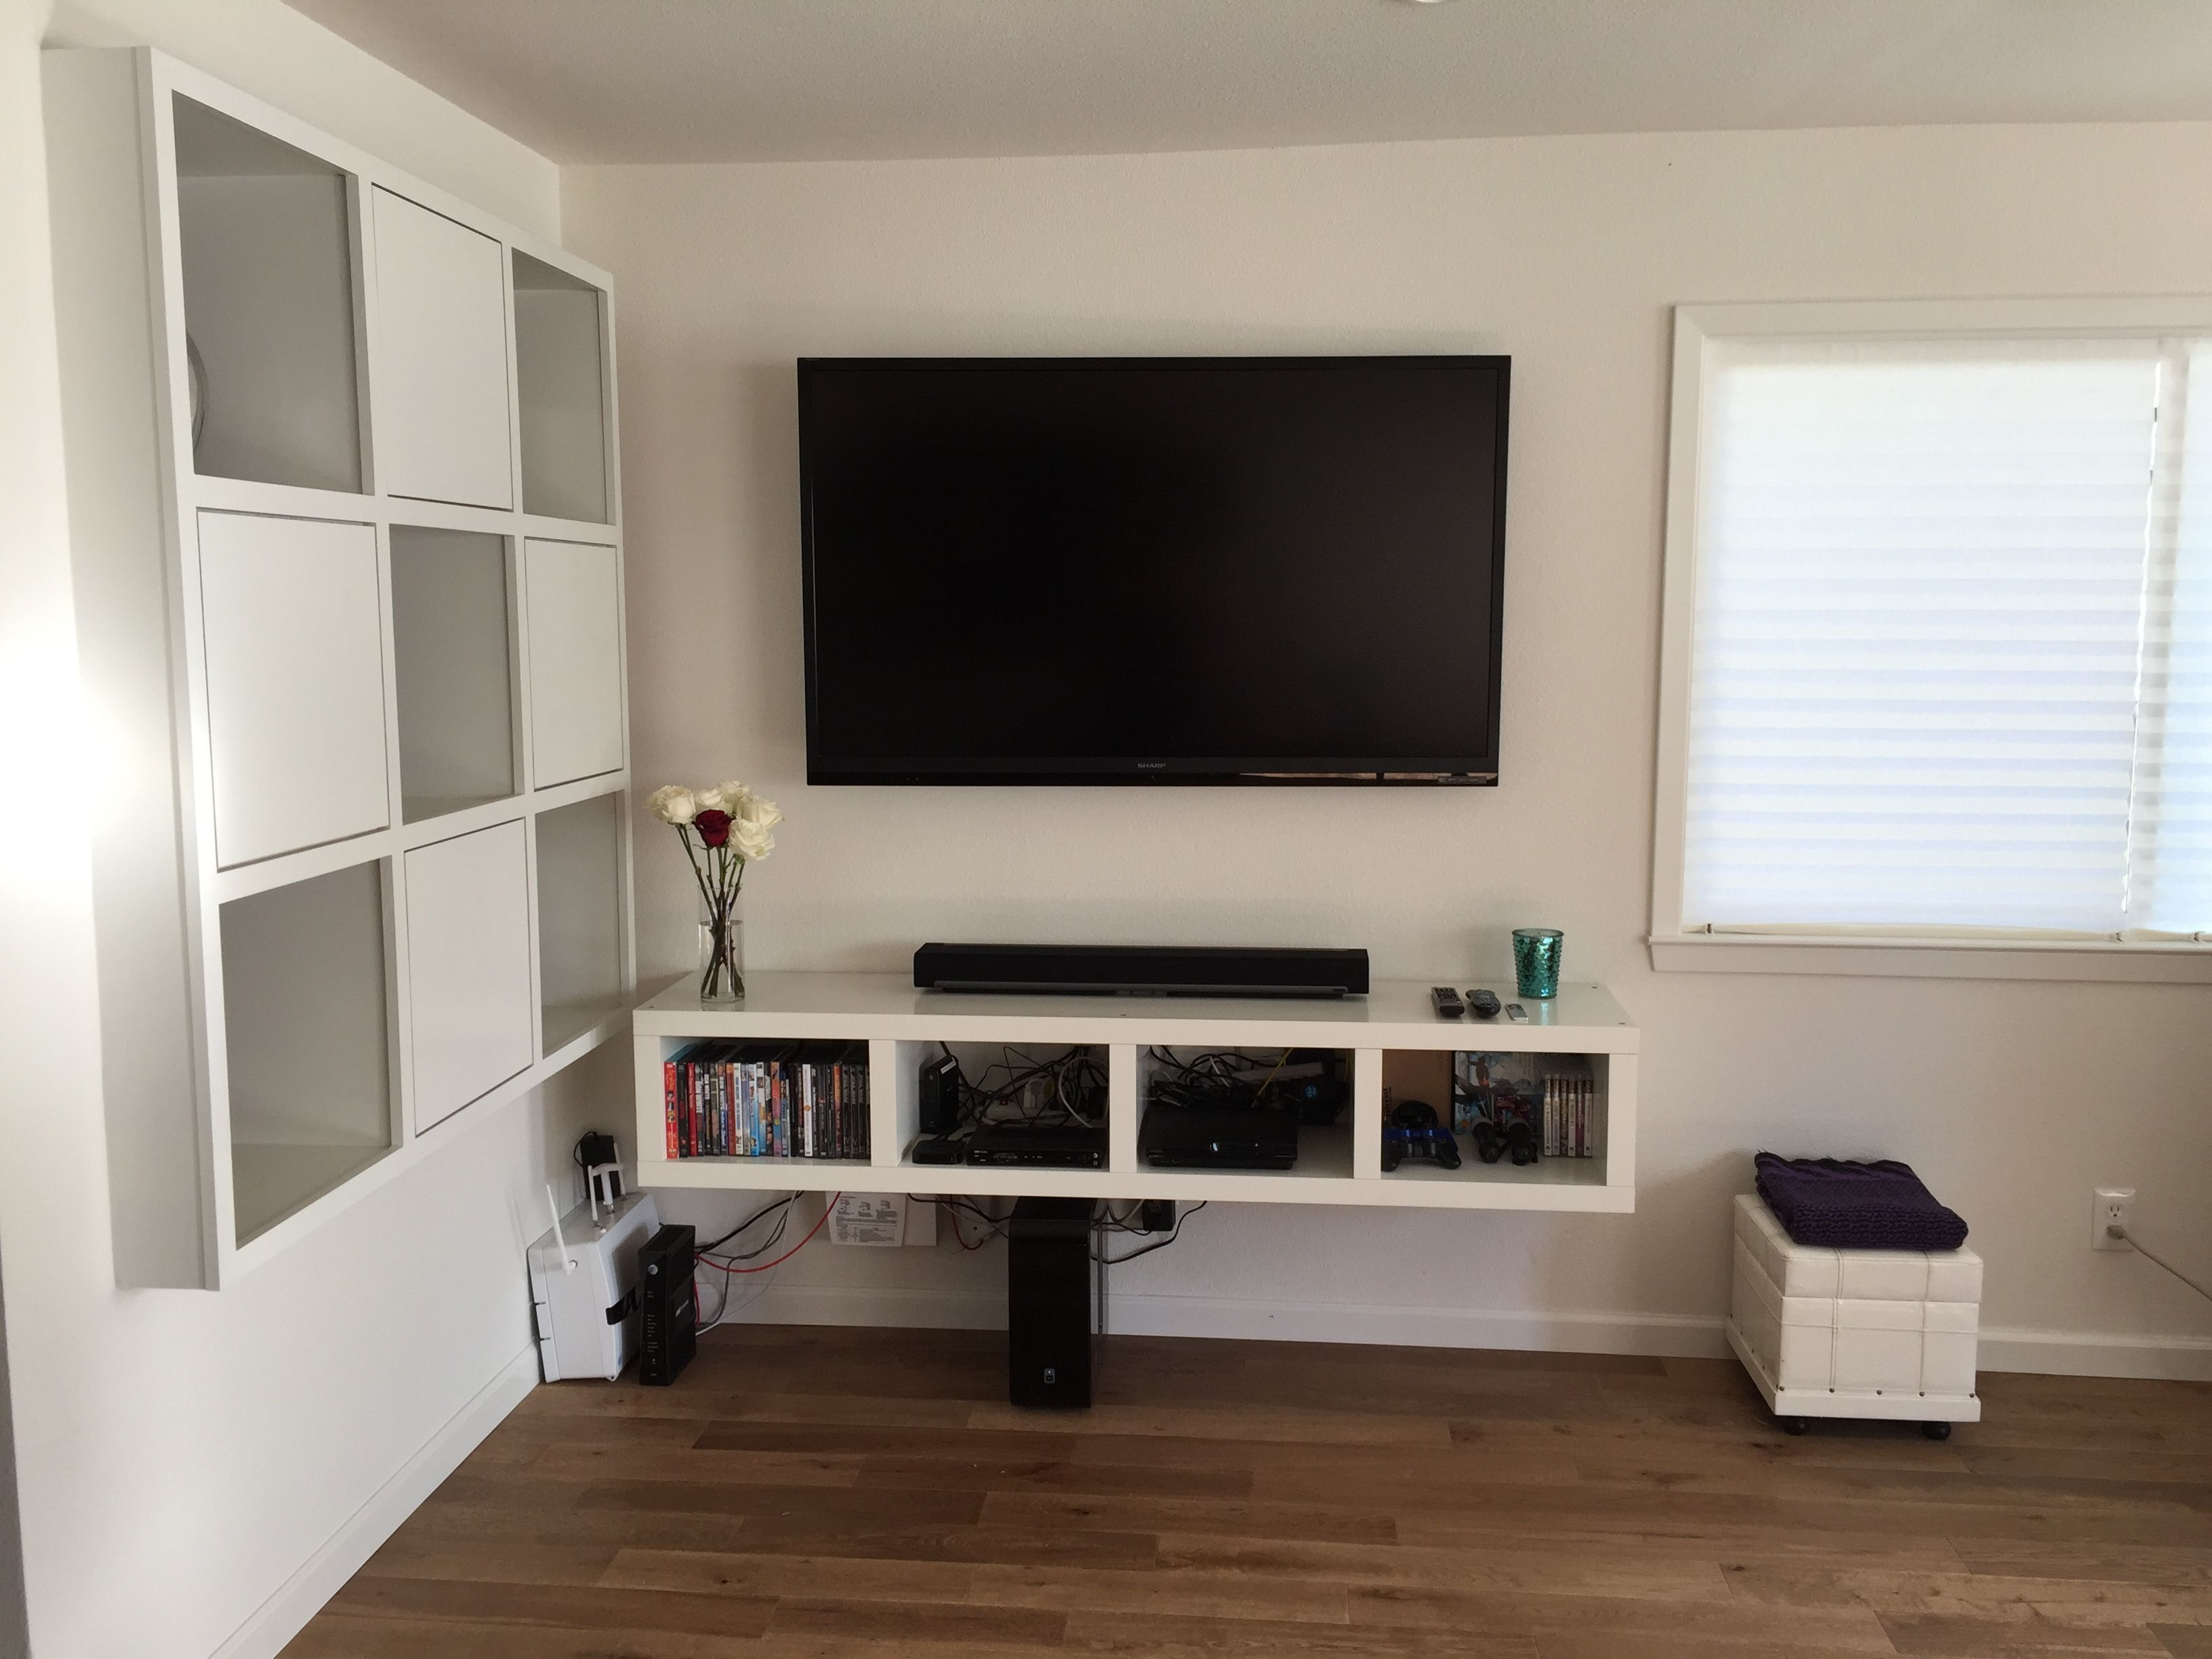 Ikea Bookshelf Converted To Floating Tv